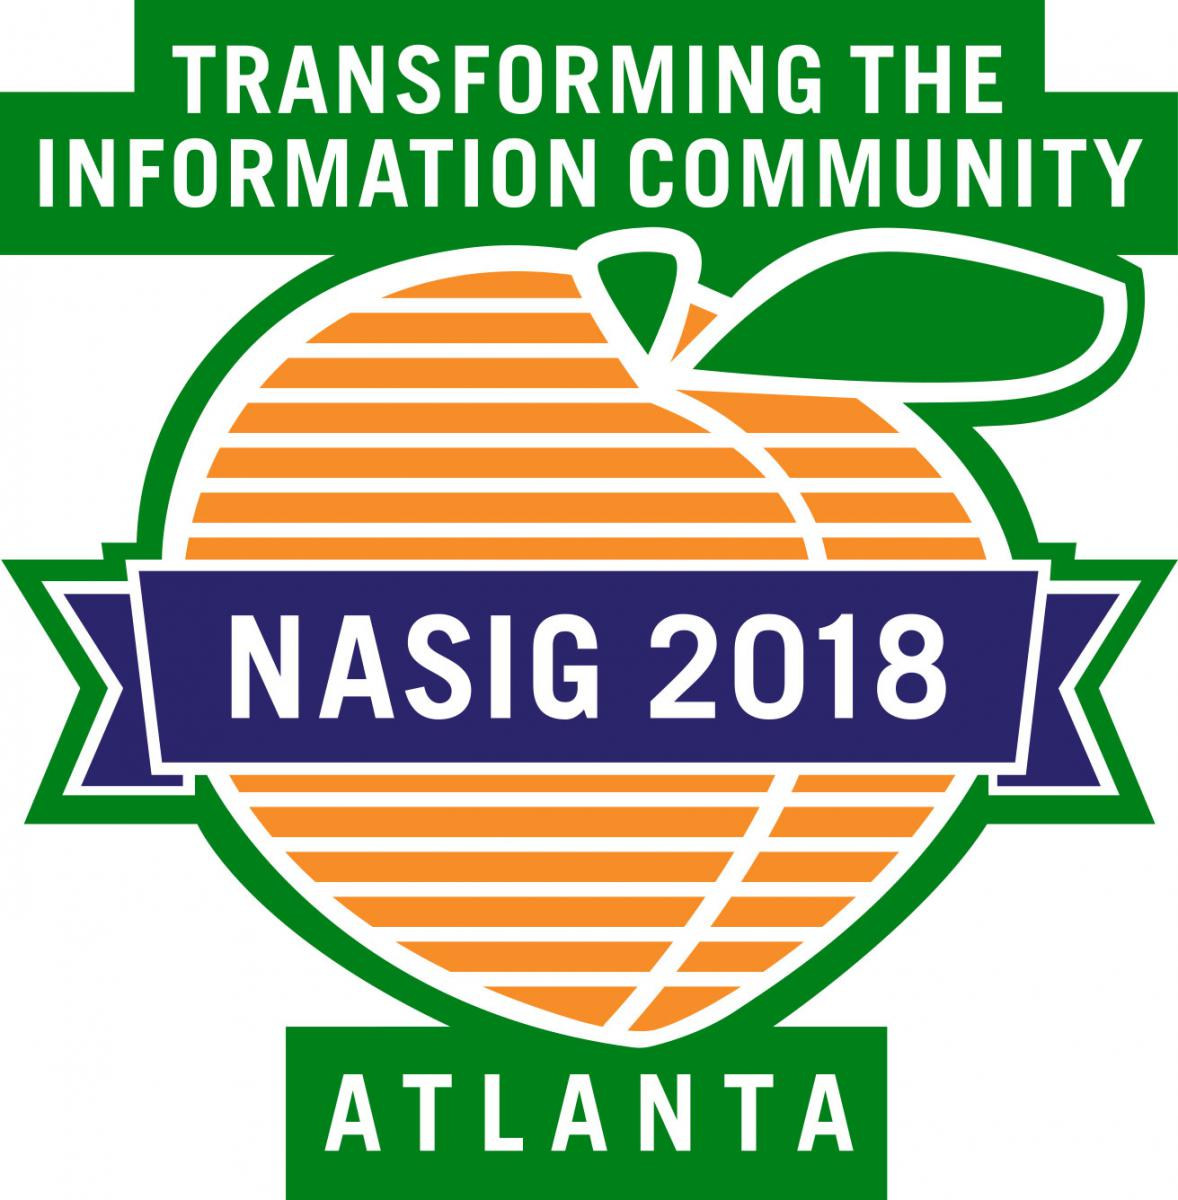 NASIG 2018 Atlanta: Transforming the Information Community